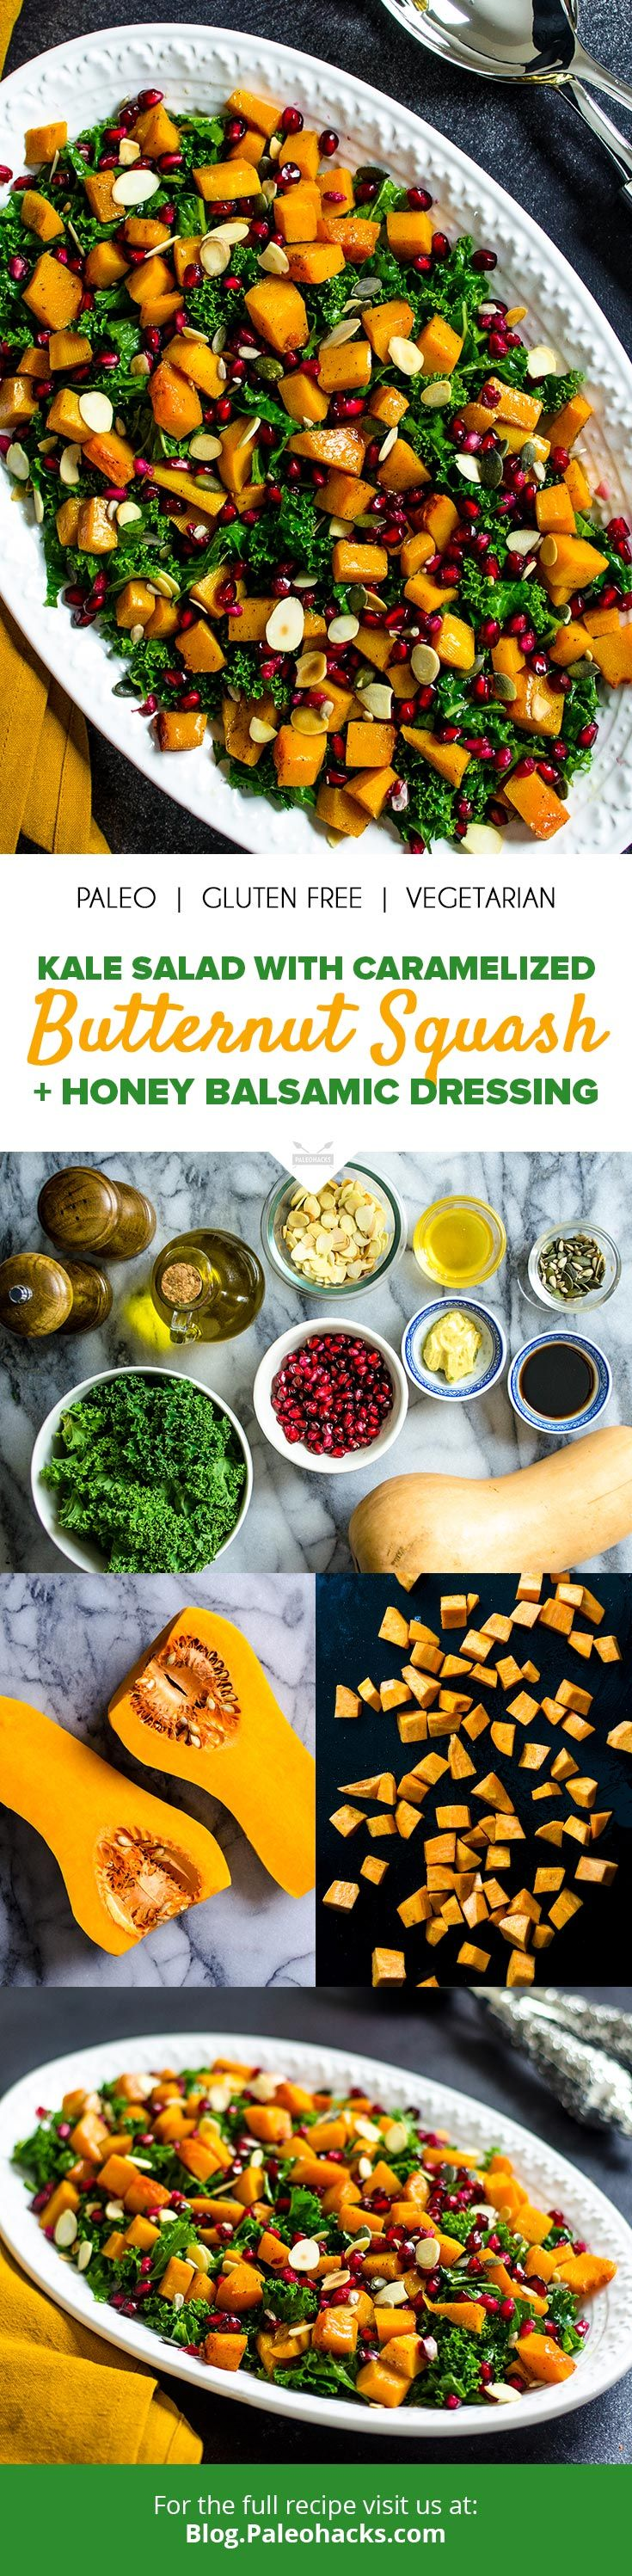 Tender kale greens get tossed with caramelized butternut squash for a hearty salad filled with nourishing ingredients. Get the full recipe here: http://paleo.co/kalesquashsalad